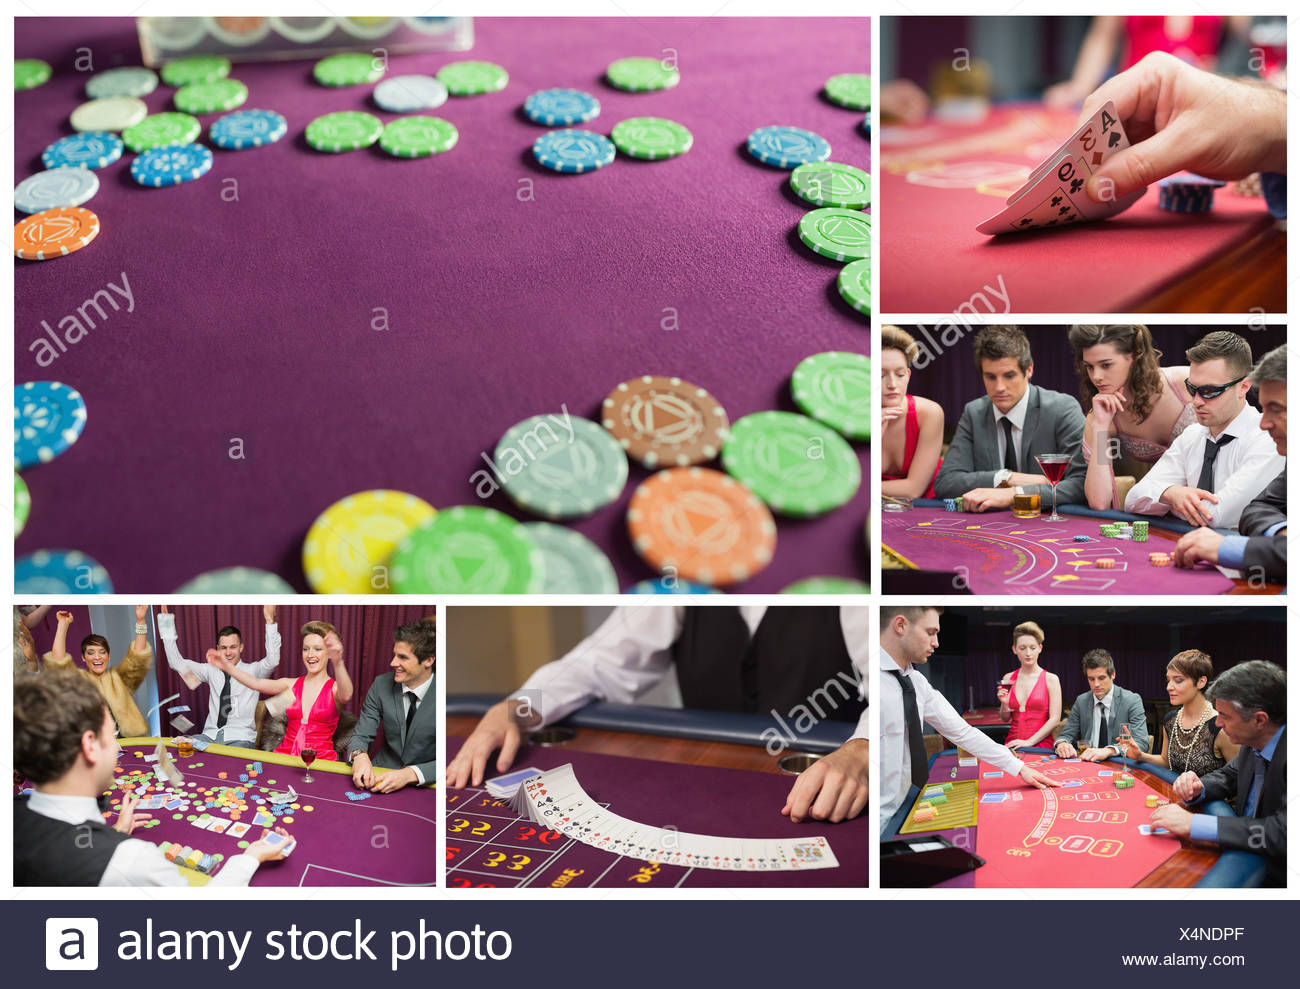 Collage of casino imagery - Stock Image